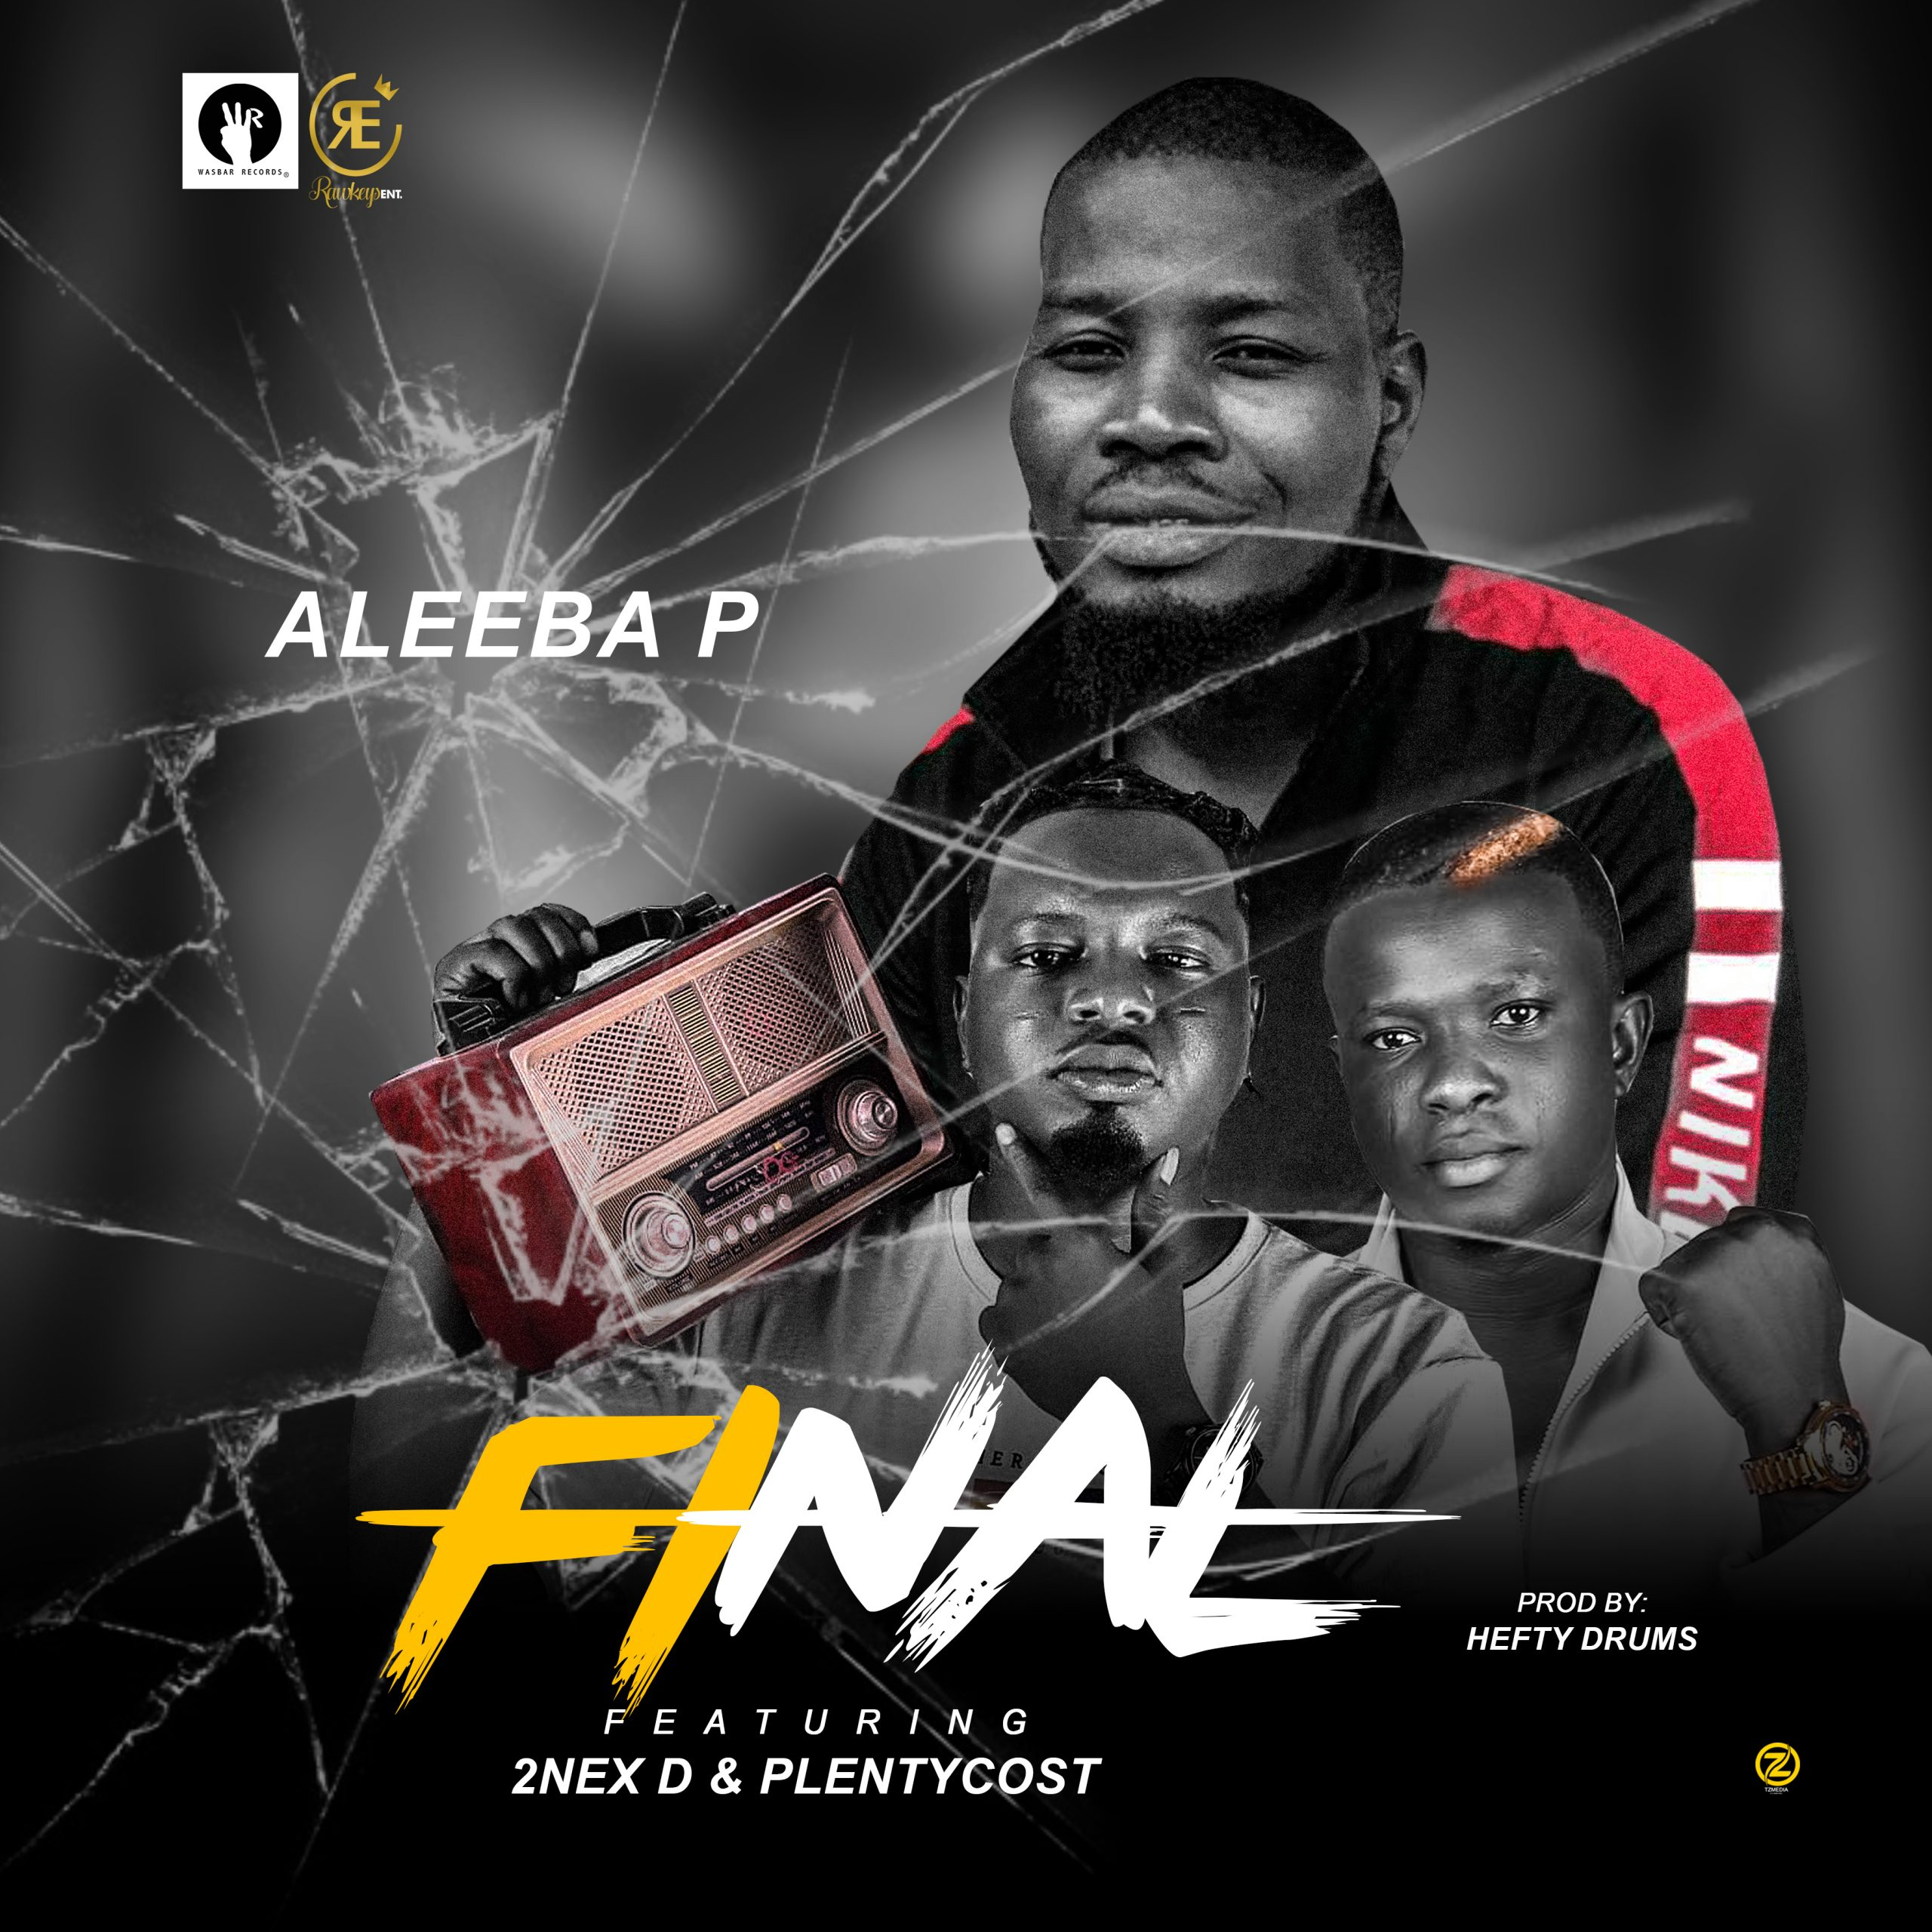 (MUSIC) ALEEBA P – FEAT. 2NEX D & PLENTYCOST – FINAL